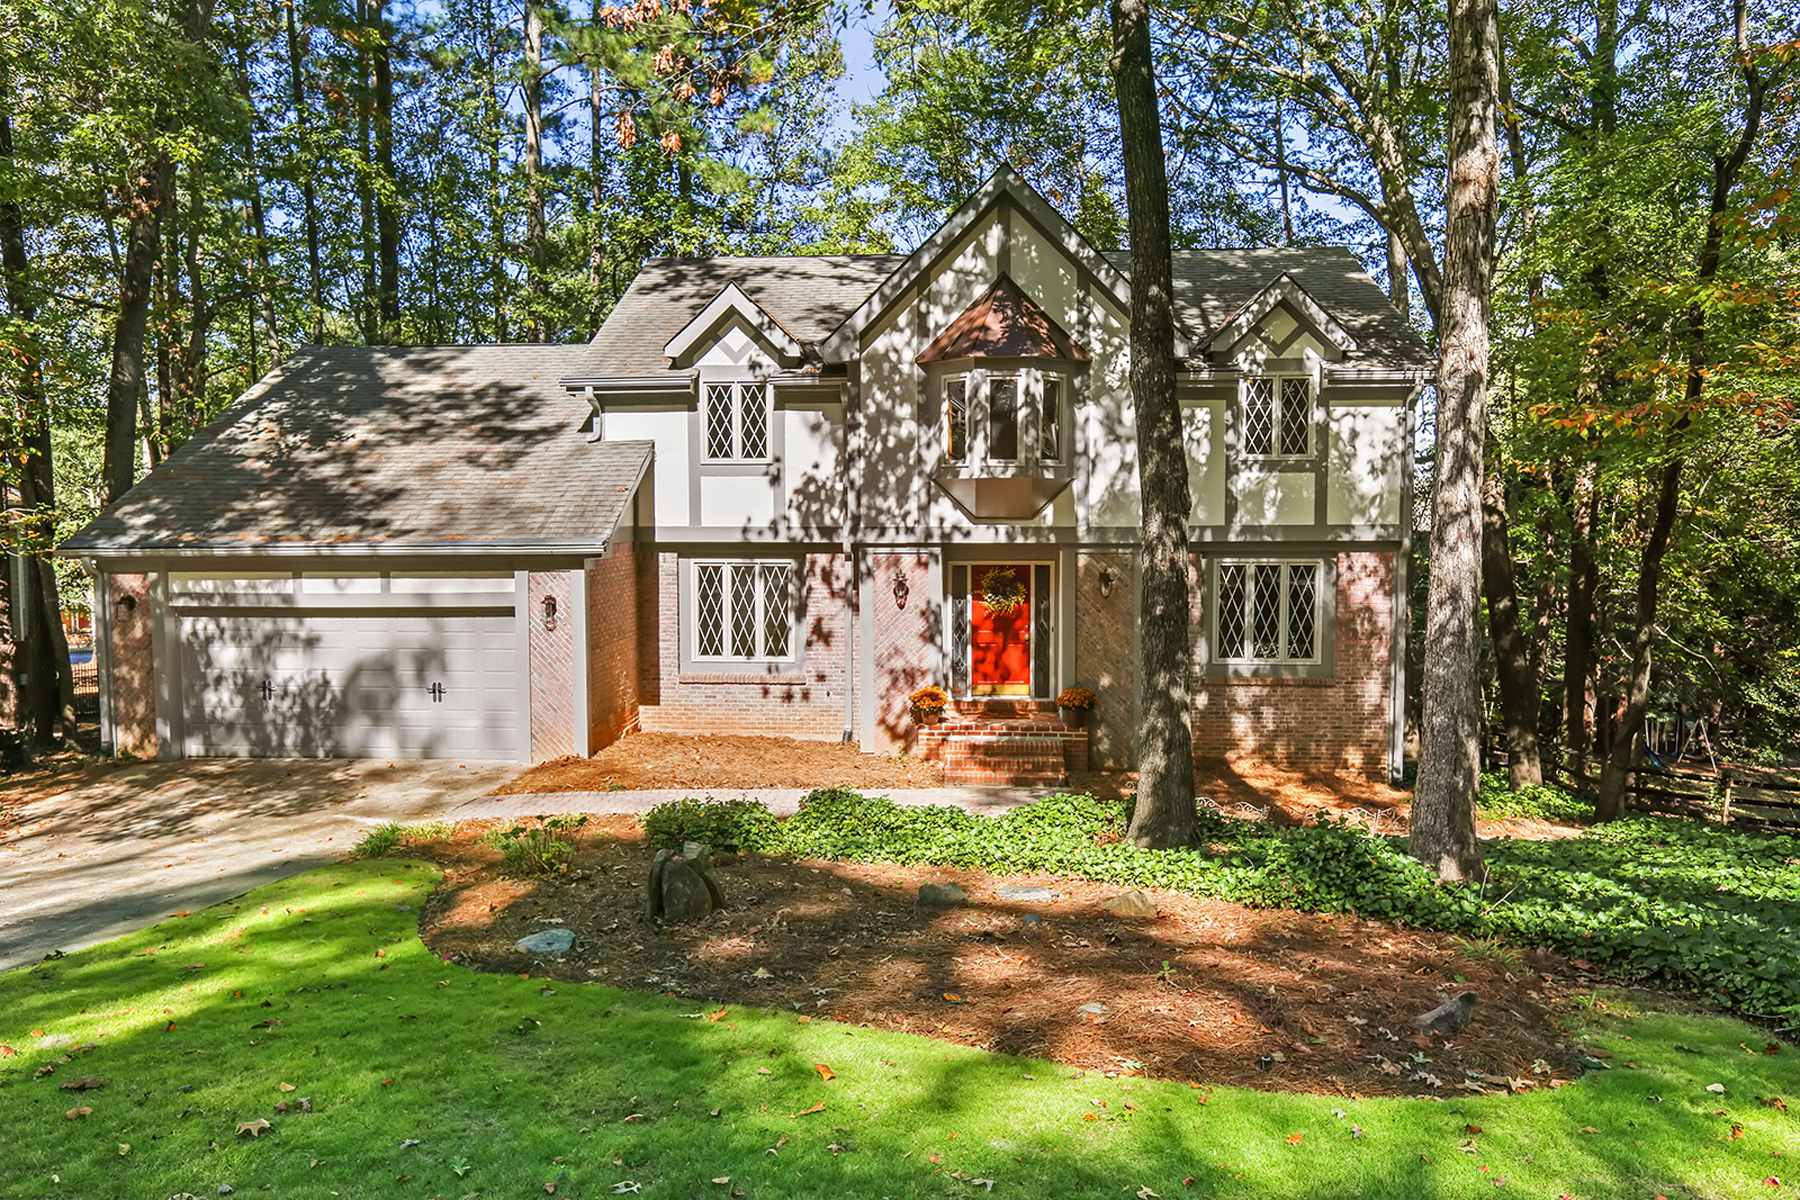 Single Family Home for Sale at BeautifullyRenovatedMulti-GenerationalLakeviewHome 131 Clipper Bay Dr Alpharetta, Georgia 30005 United States